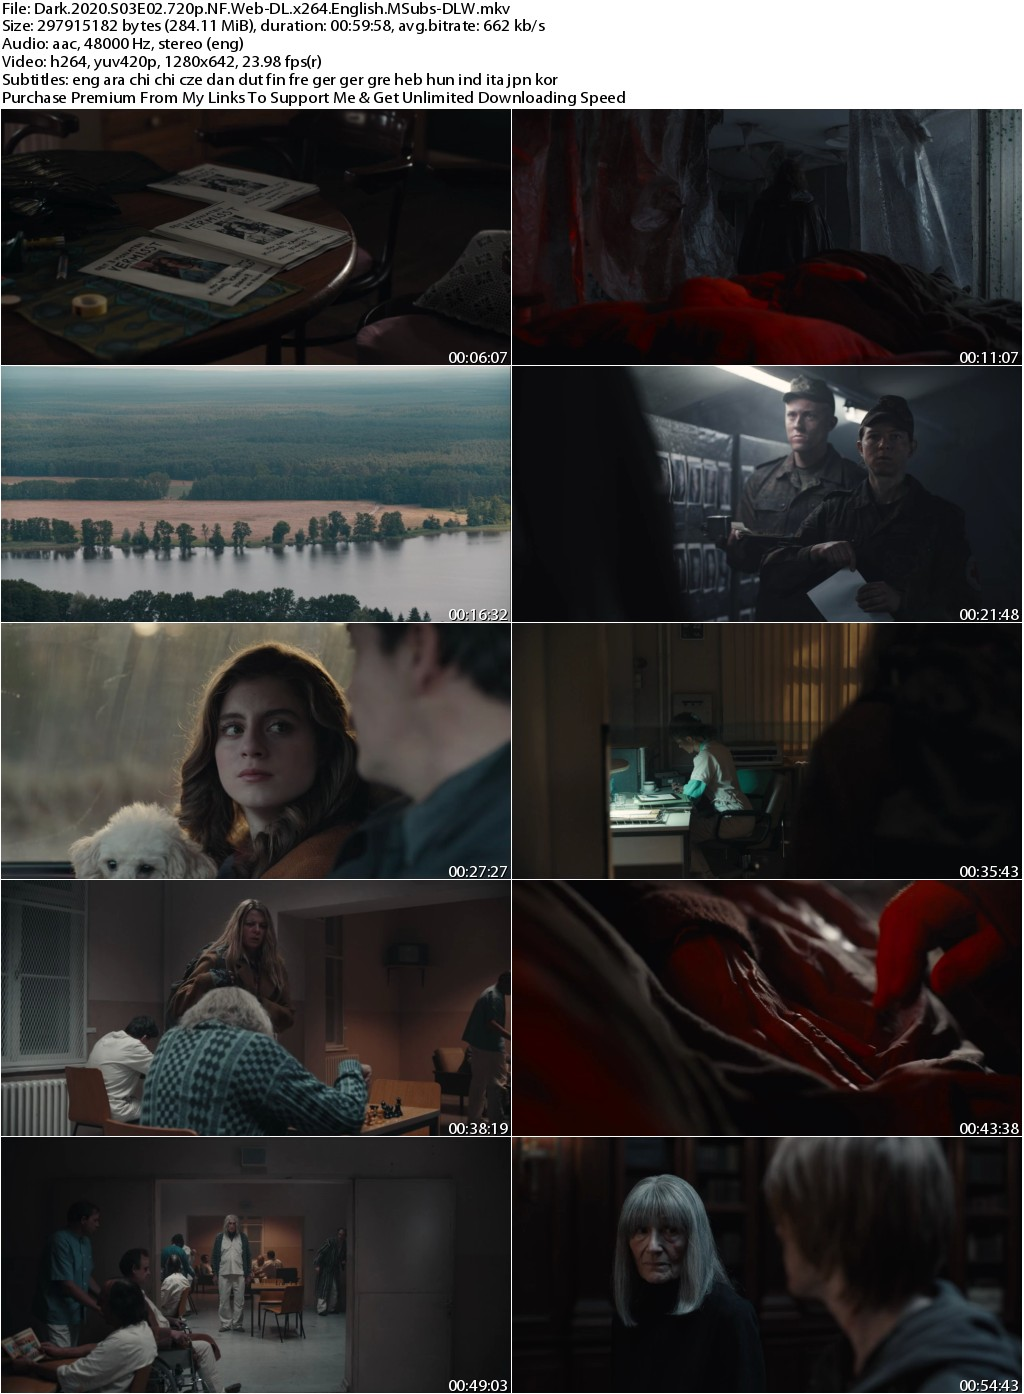 Dark 2020 Season 03 Complete 720p NF Web-DL x264 English MSubs 2.3GB-DLW